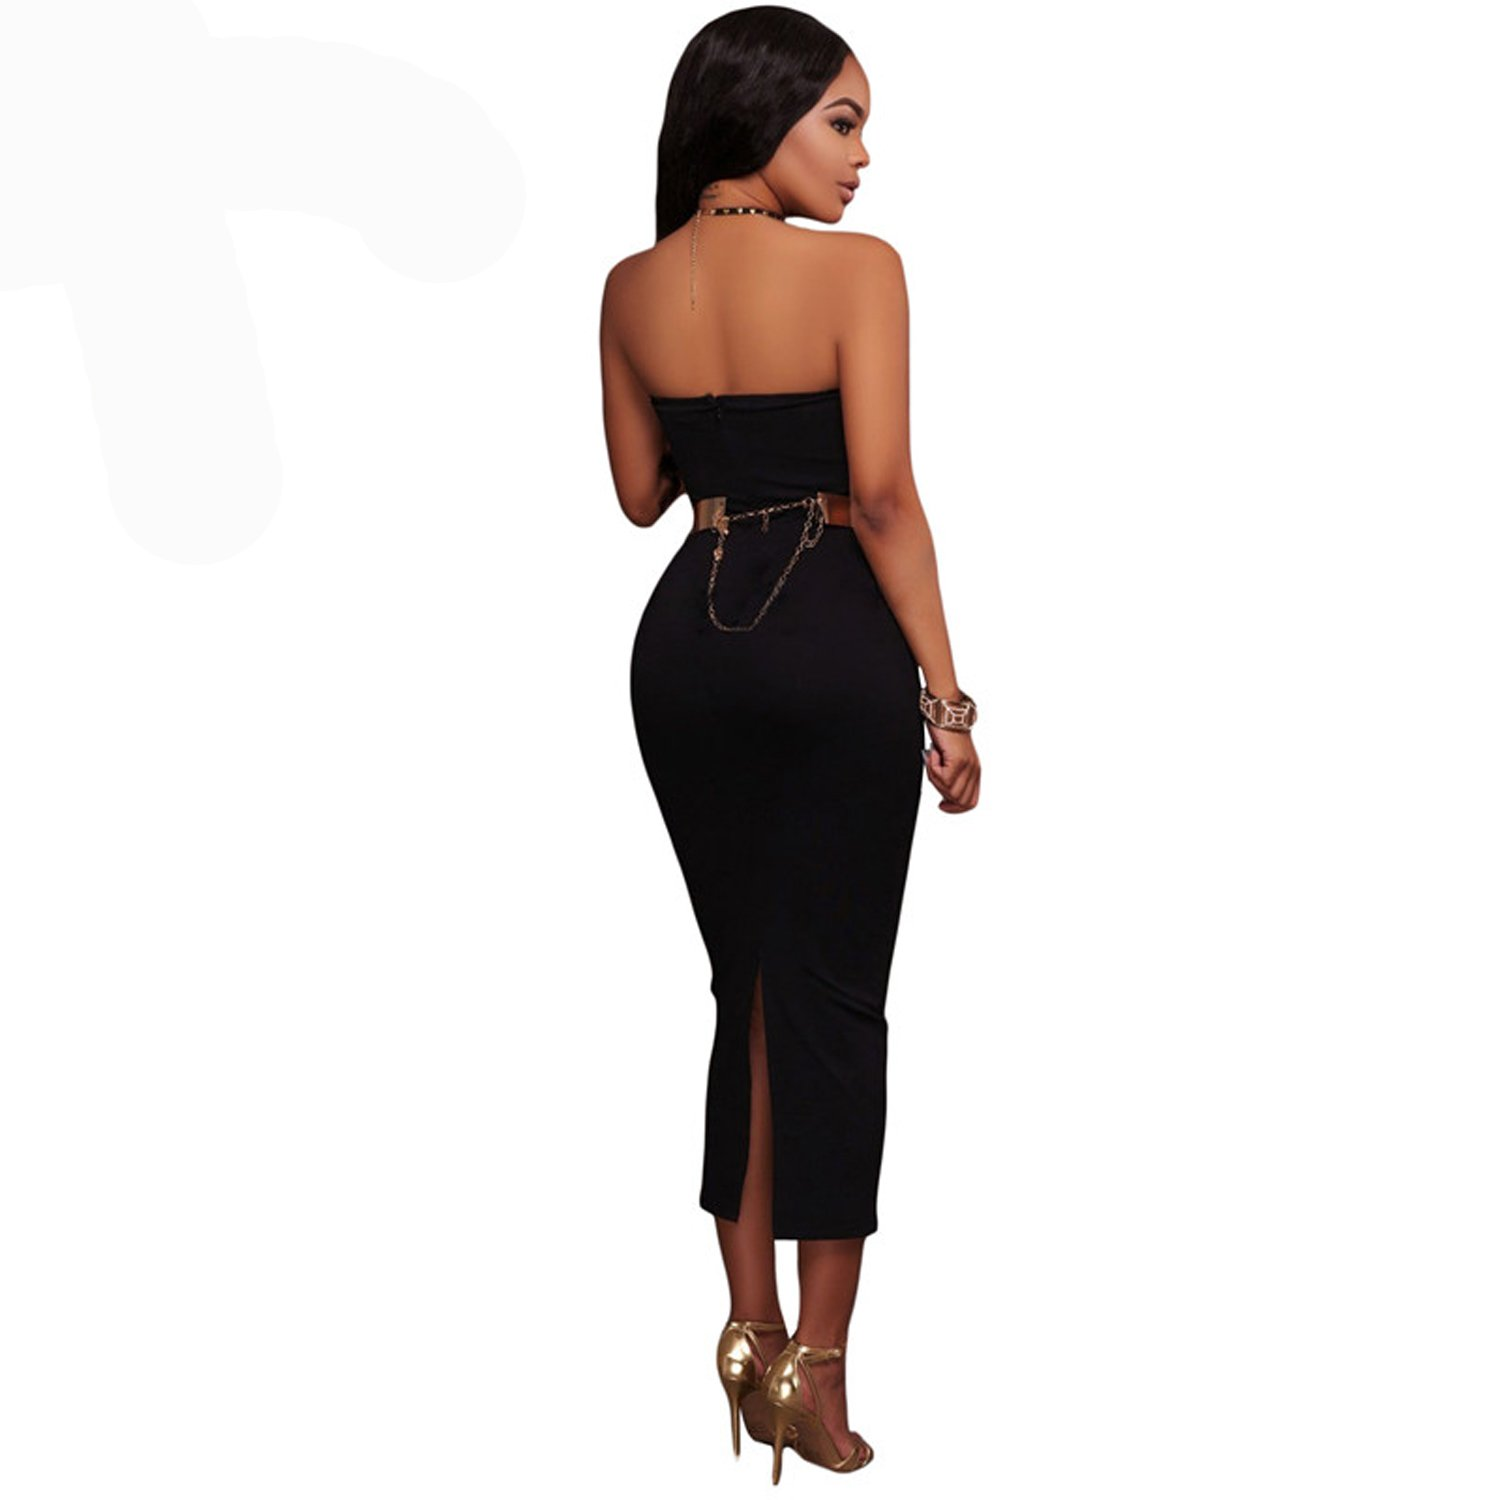 Women Midi Dress Black Strapless Side Lace Up Hem Bodycon Vestidos Summer Celebrity Evening Party Dresses at Amazon Womens Clothing store: